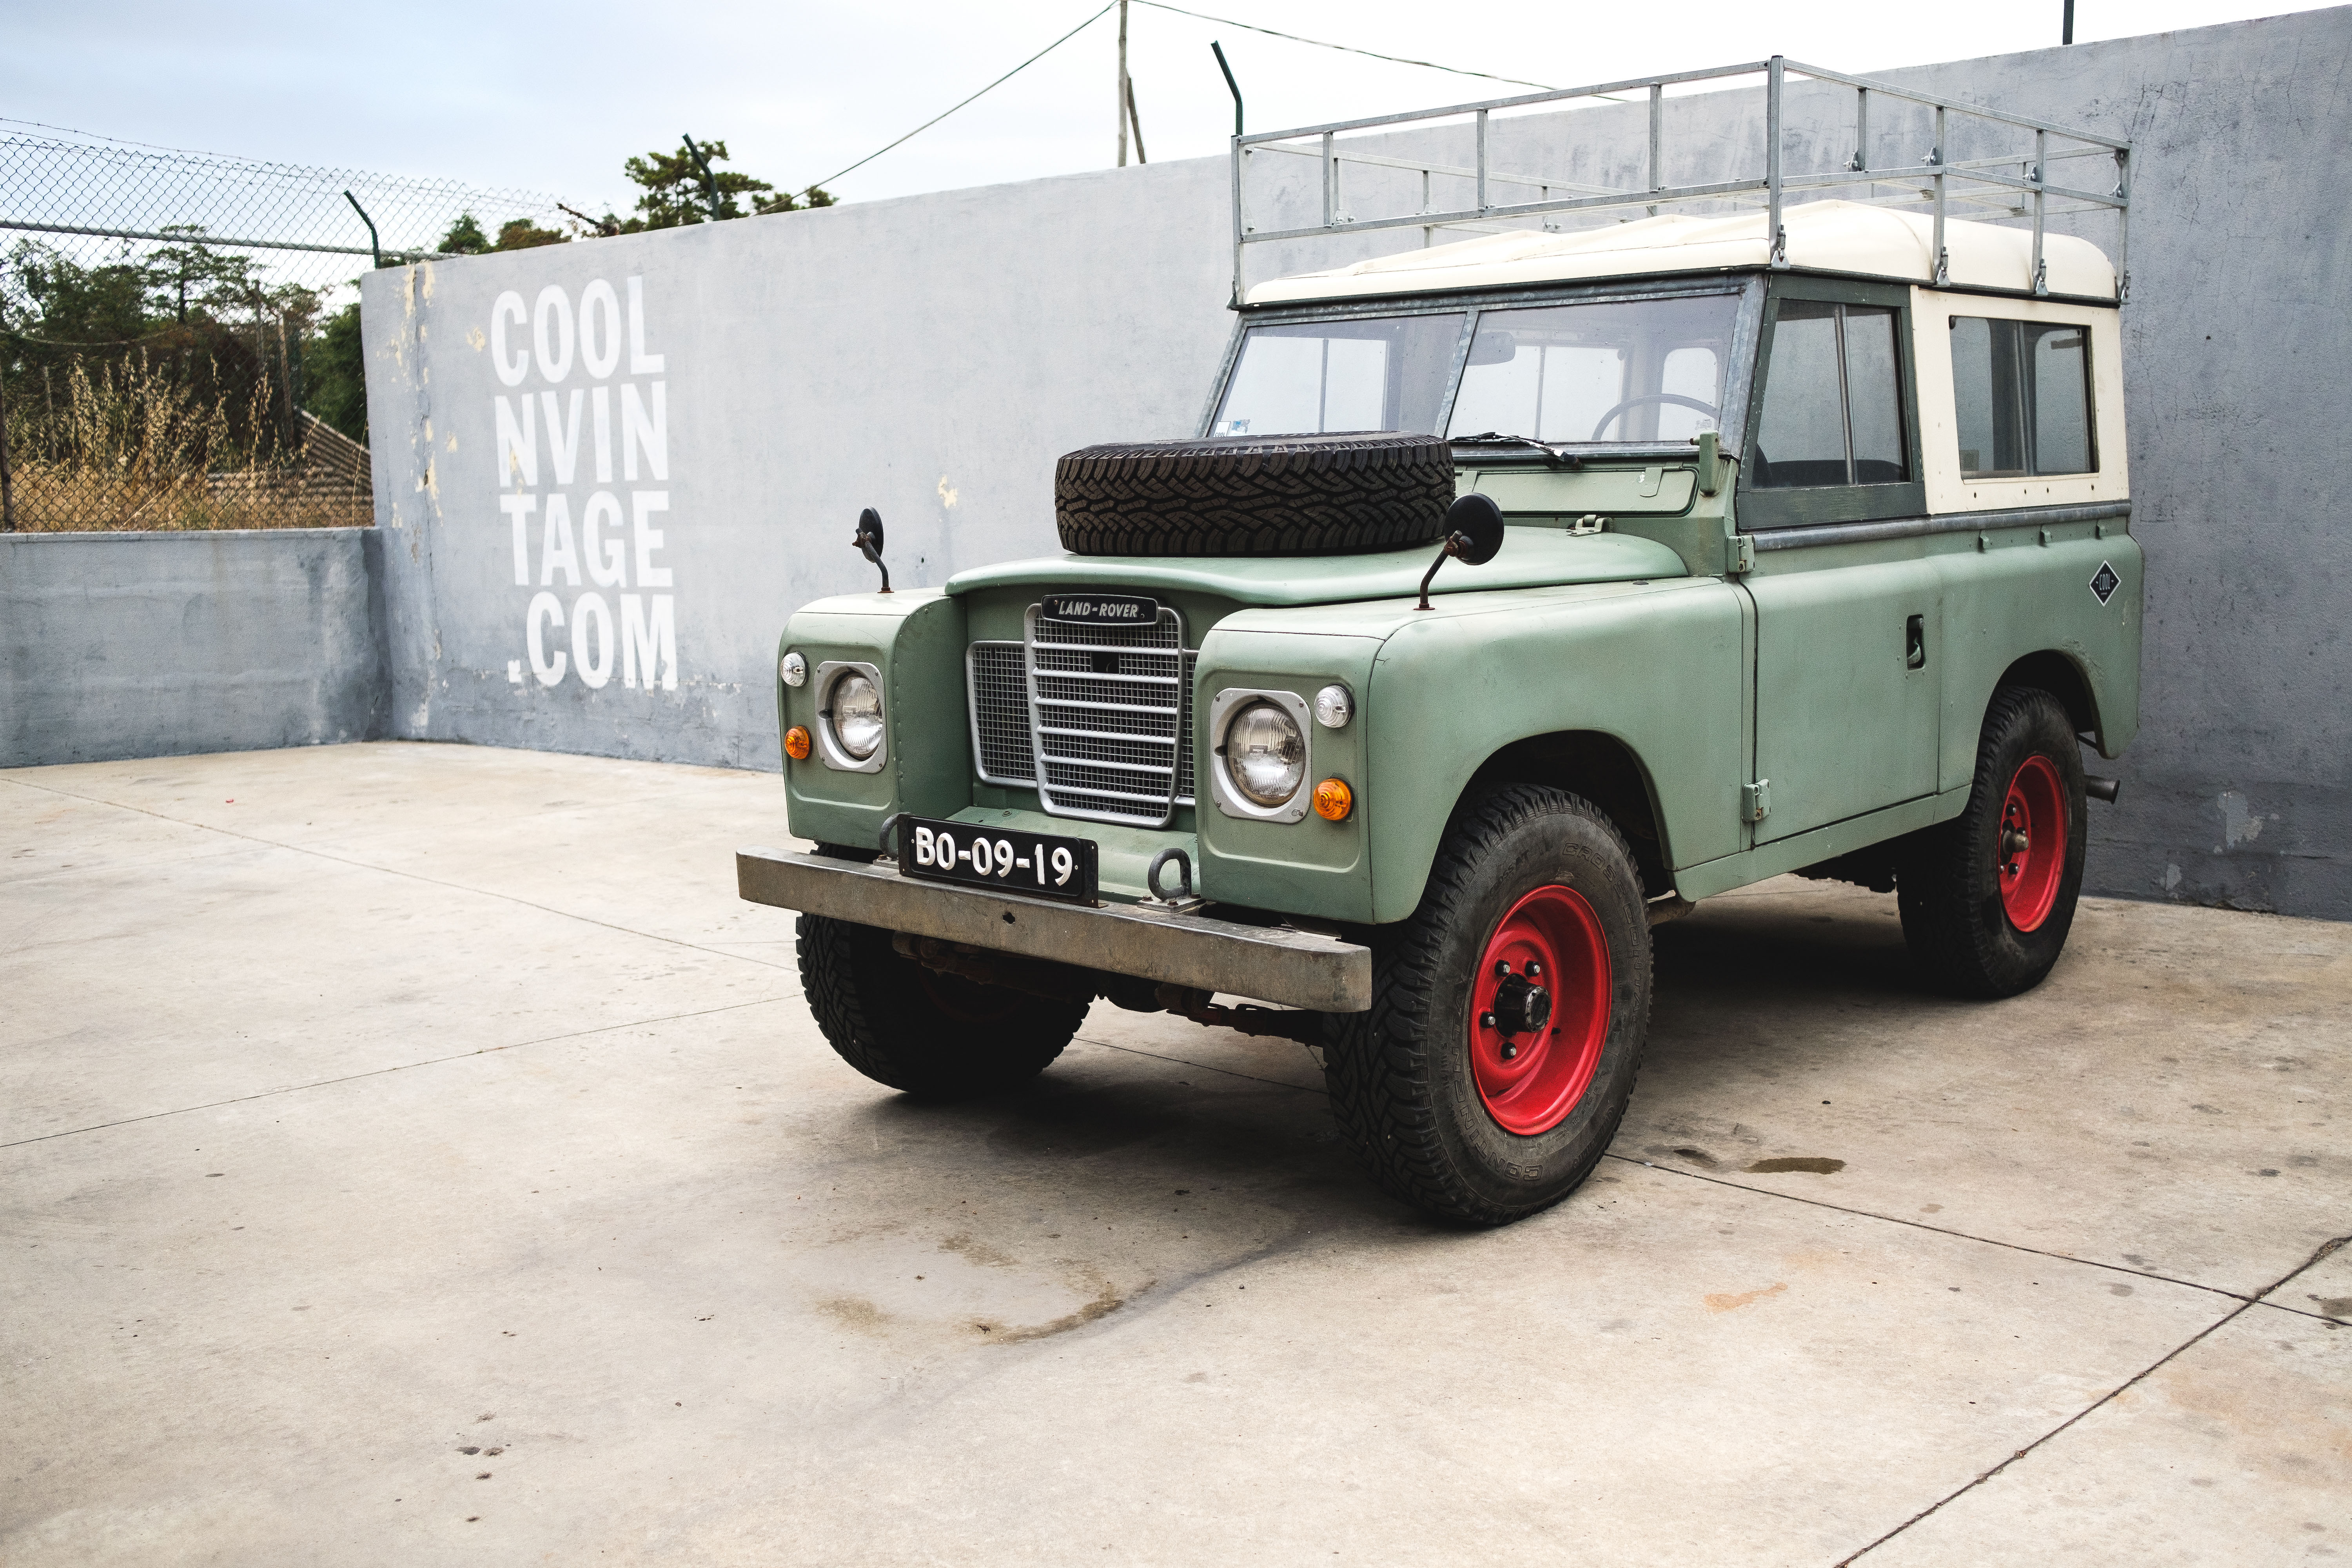 Meet The Founder Of Portugals Coolest Vintage Car Company Huckberry Land Rover Defender Challenge Are There Any Special Projects Or Collaborations Youre Excited To Be A Part